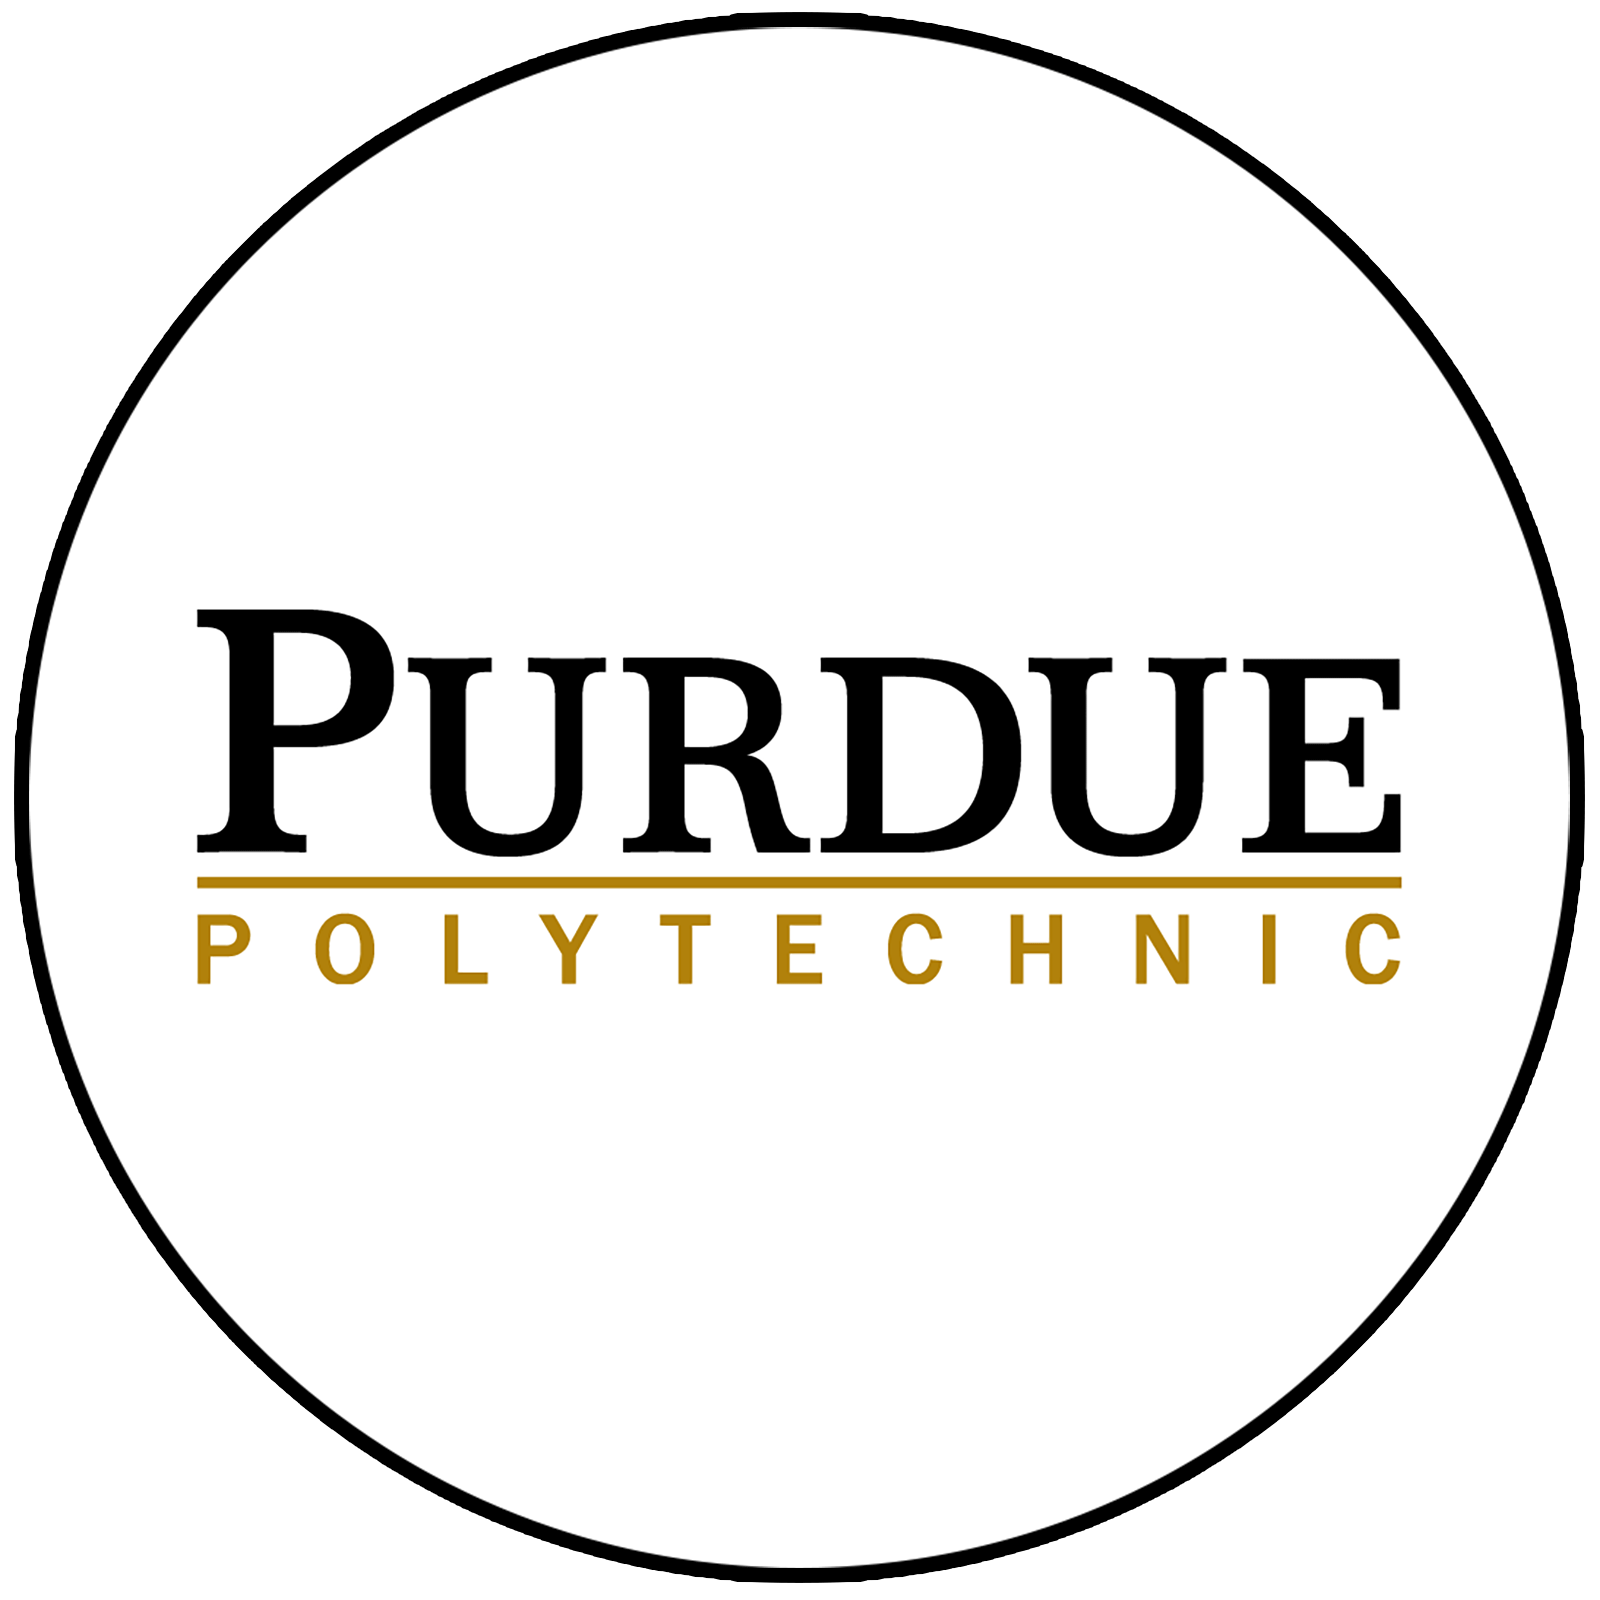 Welcome to the new Home of Purdue Polytechnic Athletics